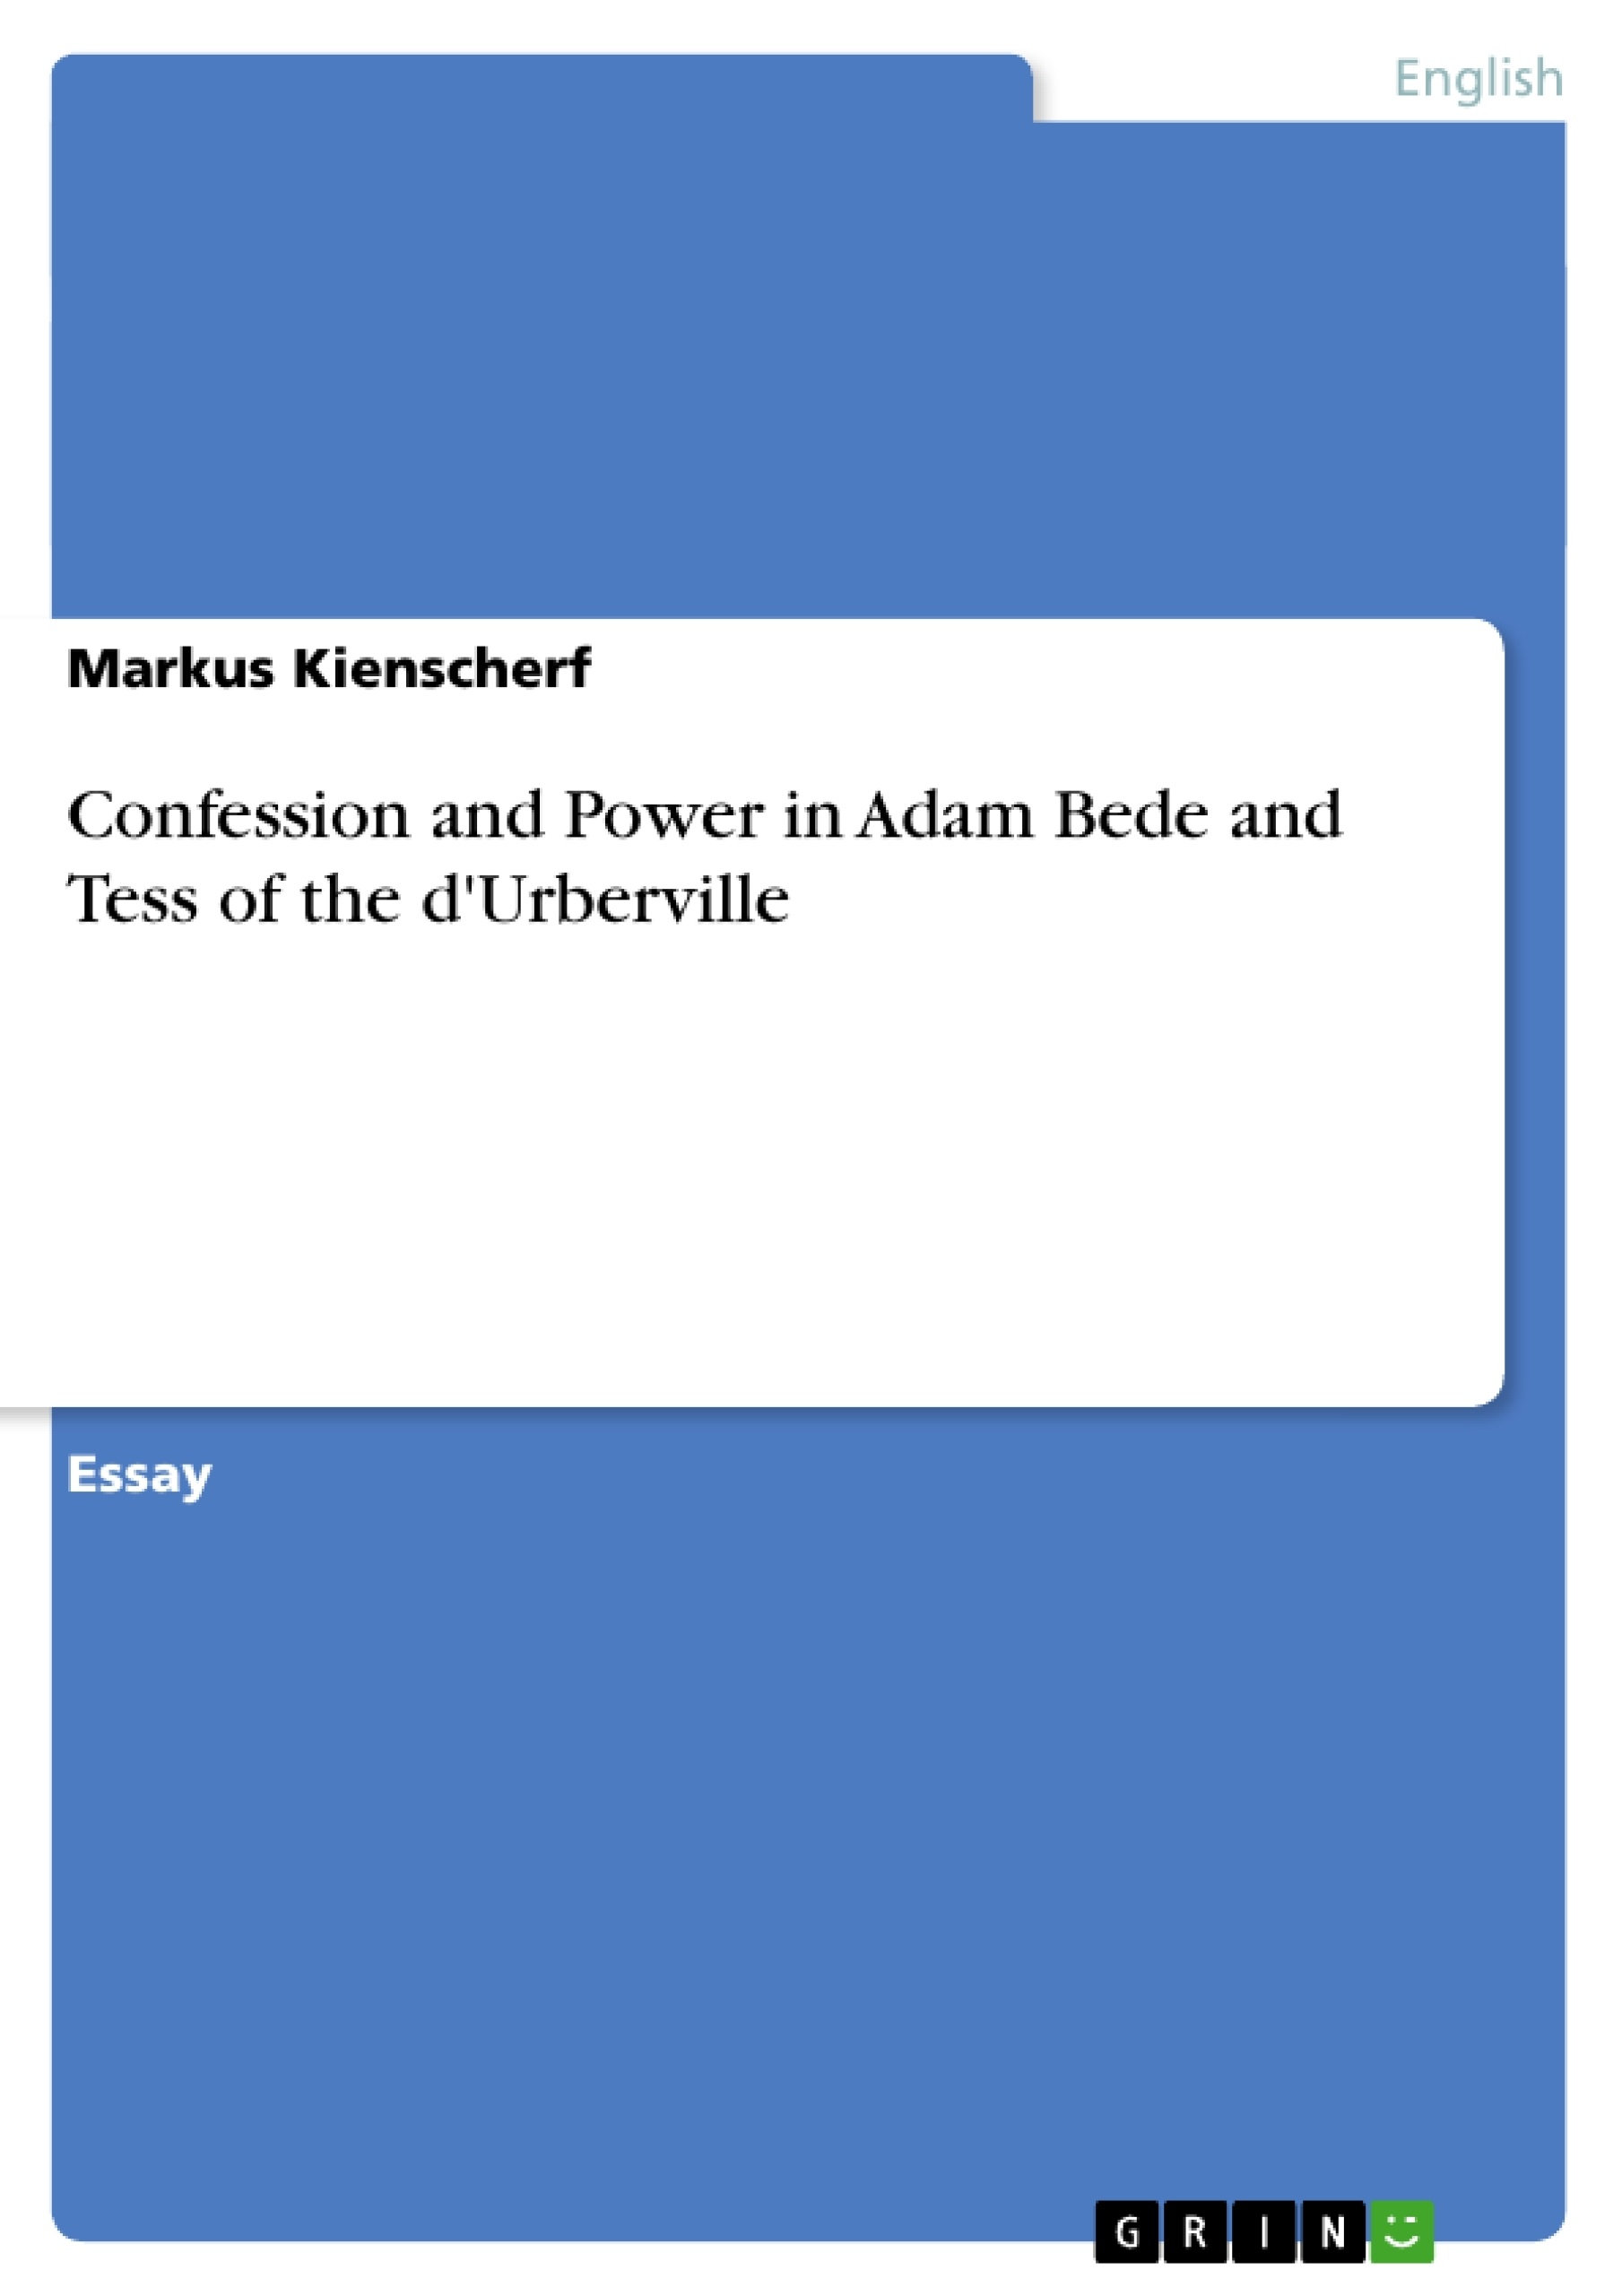 Title: Confession and Power in Adam Bede and Tess of the d'Urberville